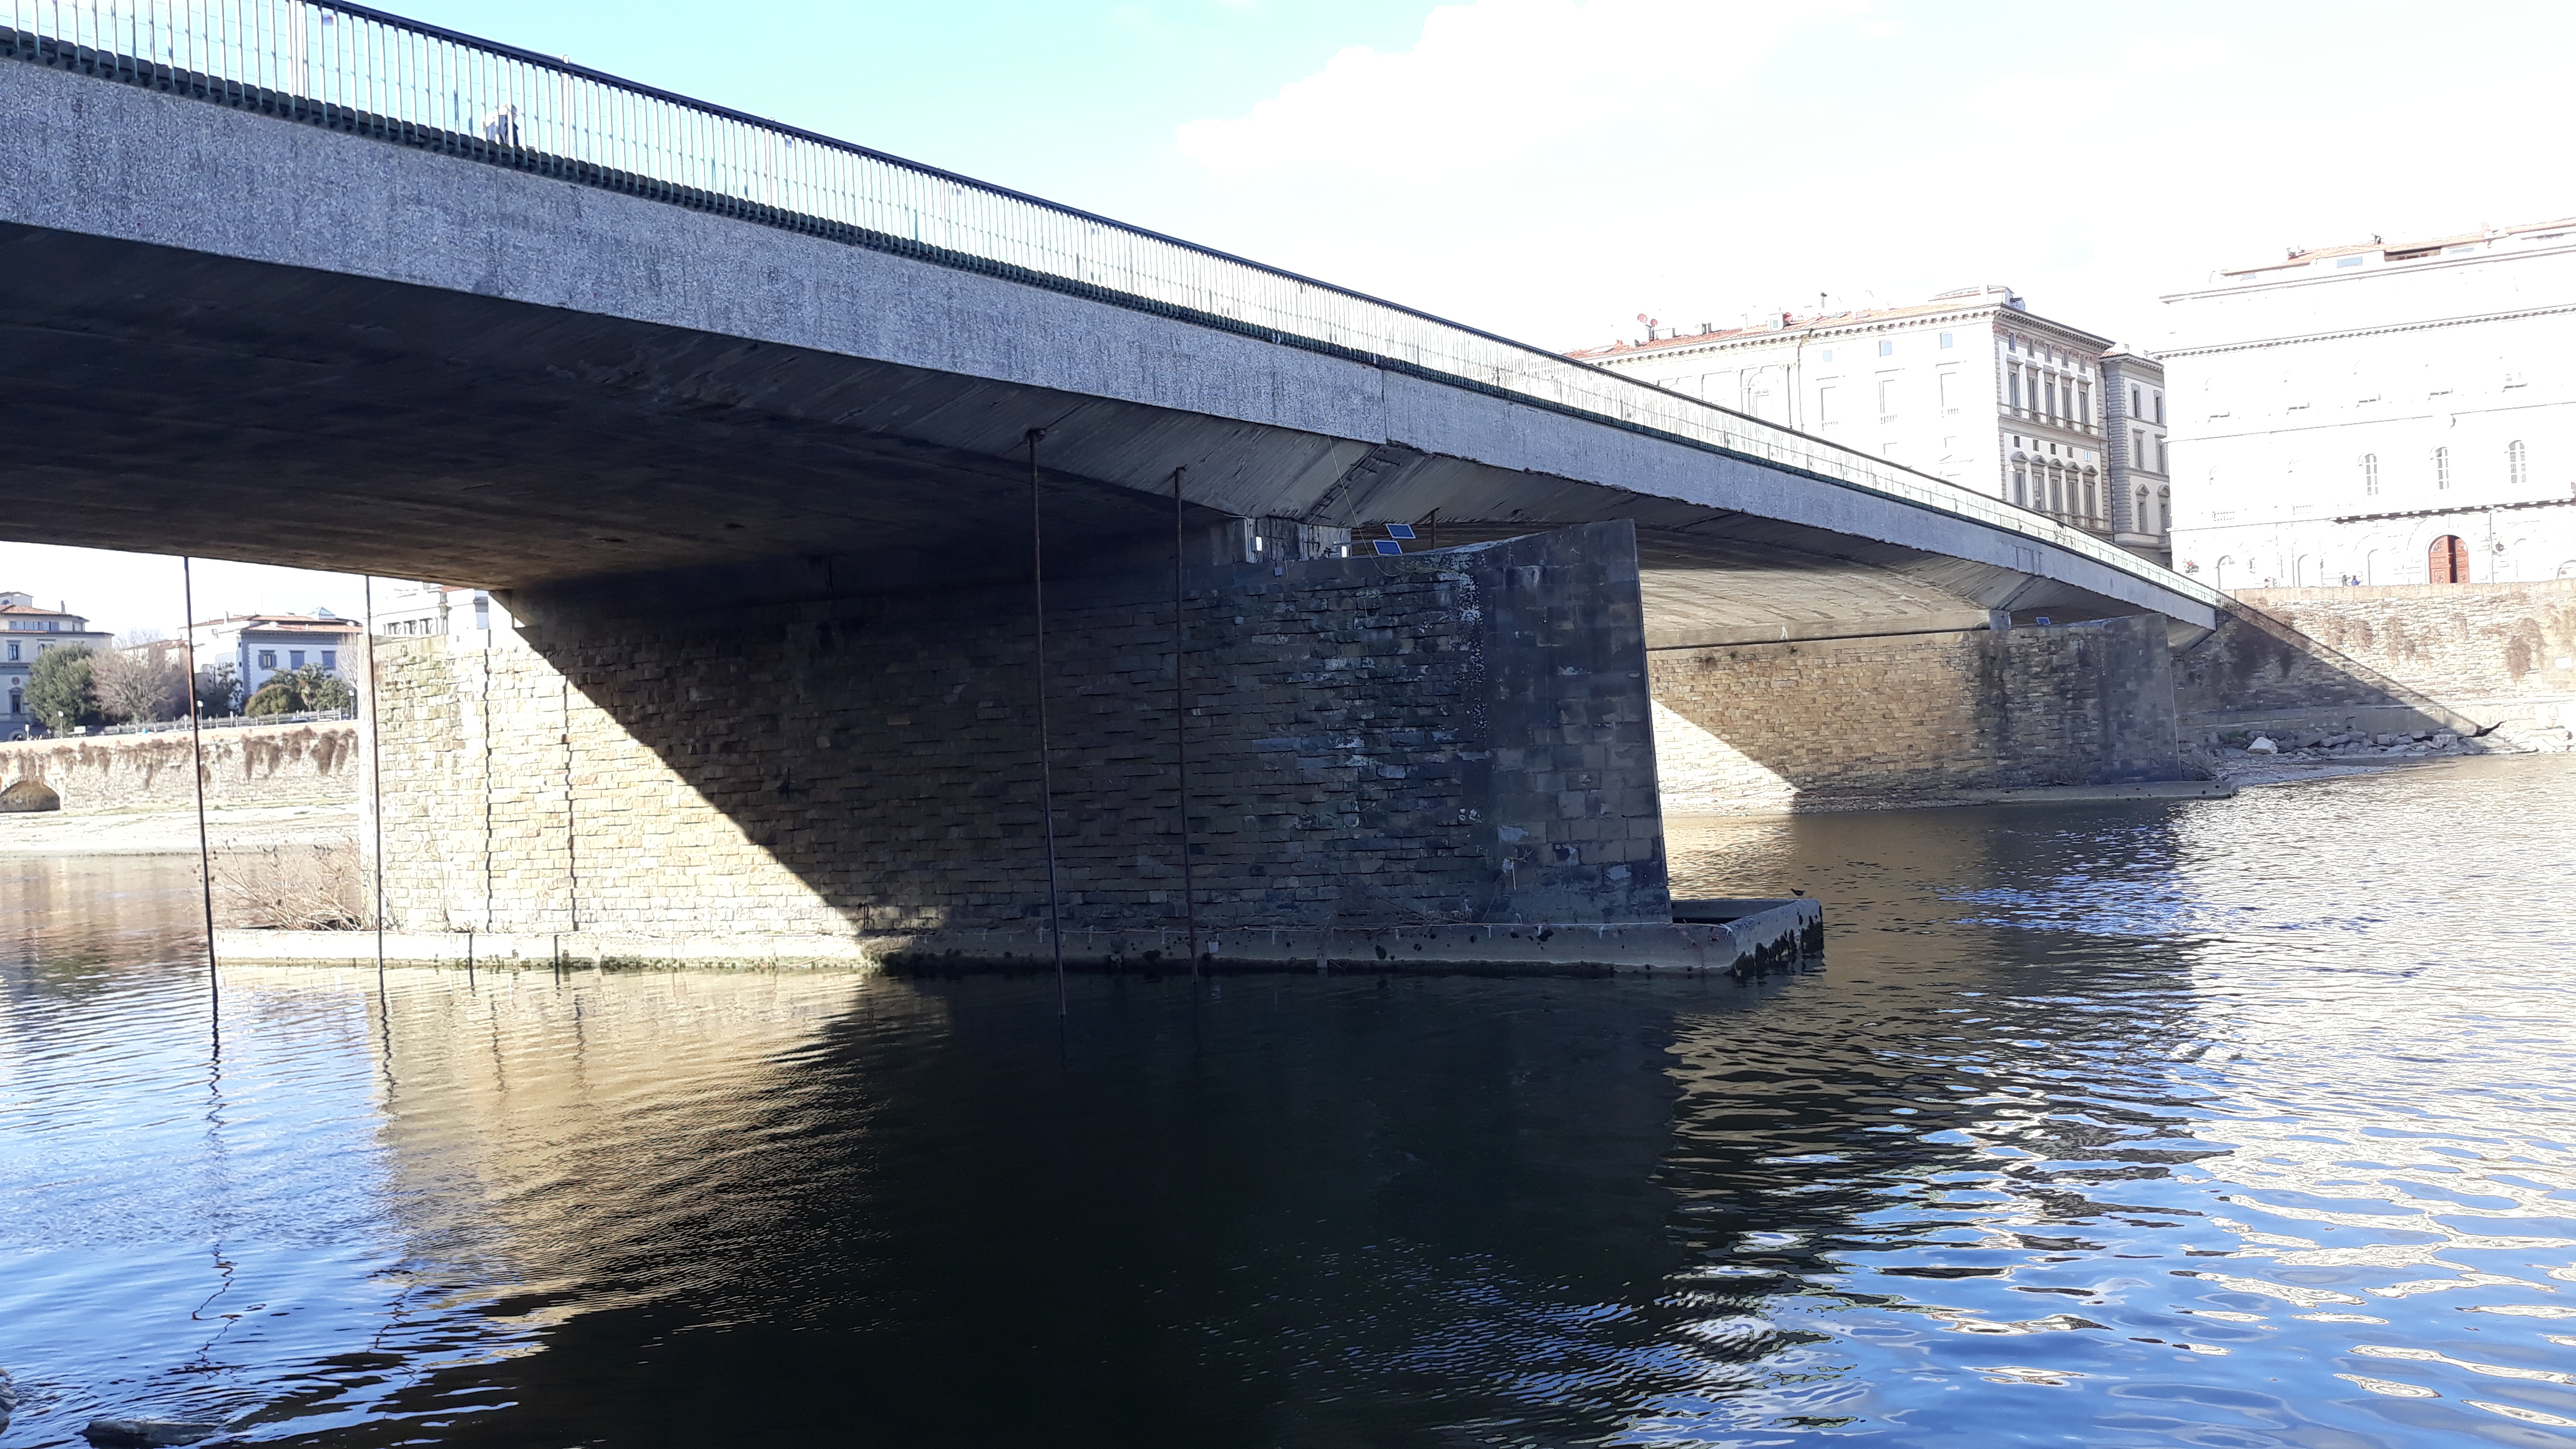 Trevi know-how and technology for the safety of the Vespucci Bridge in Florence | Trevi Spa 6